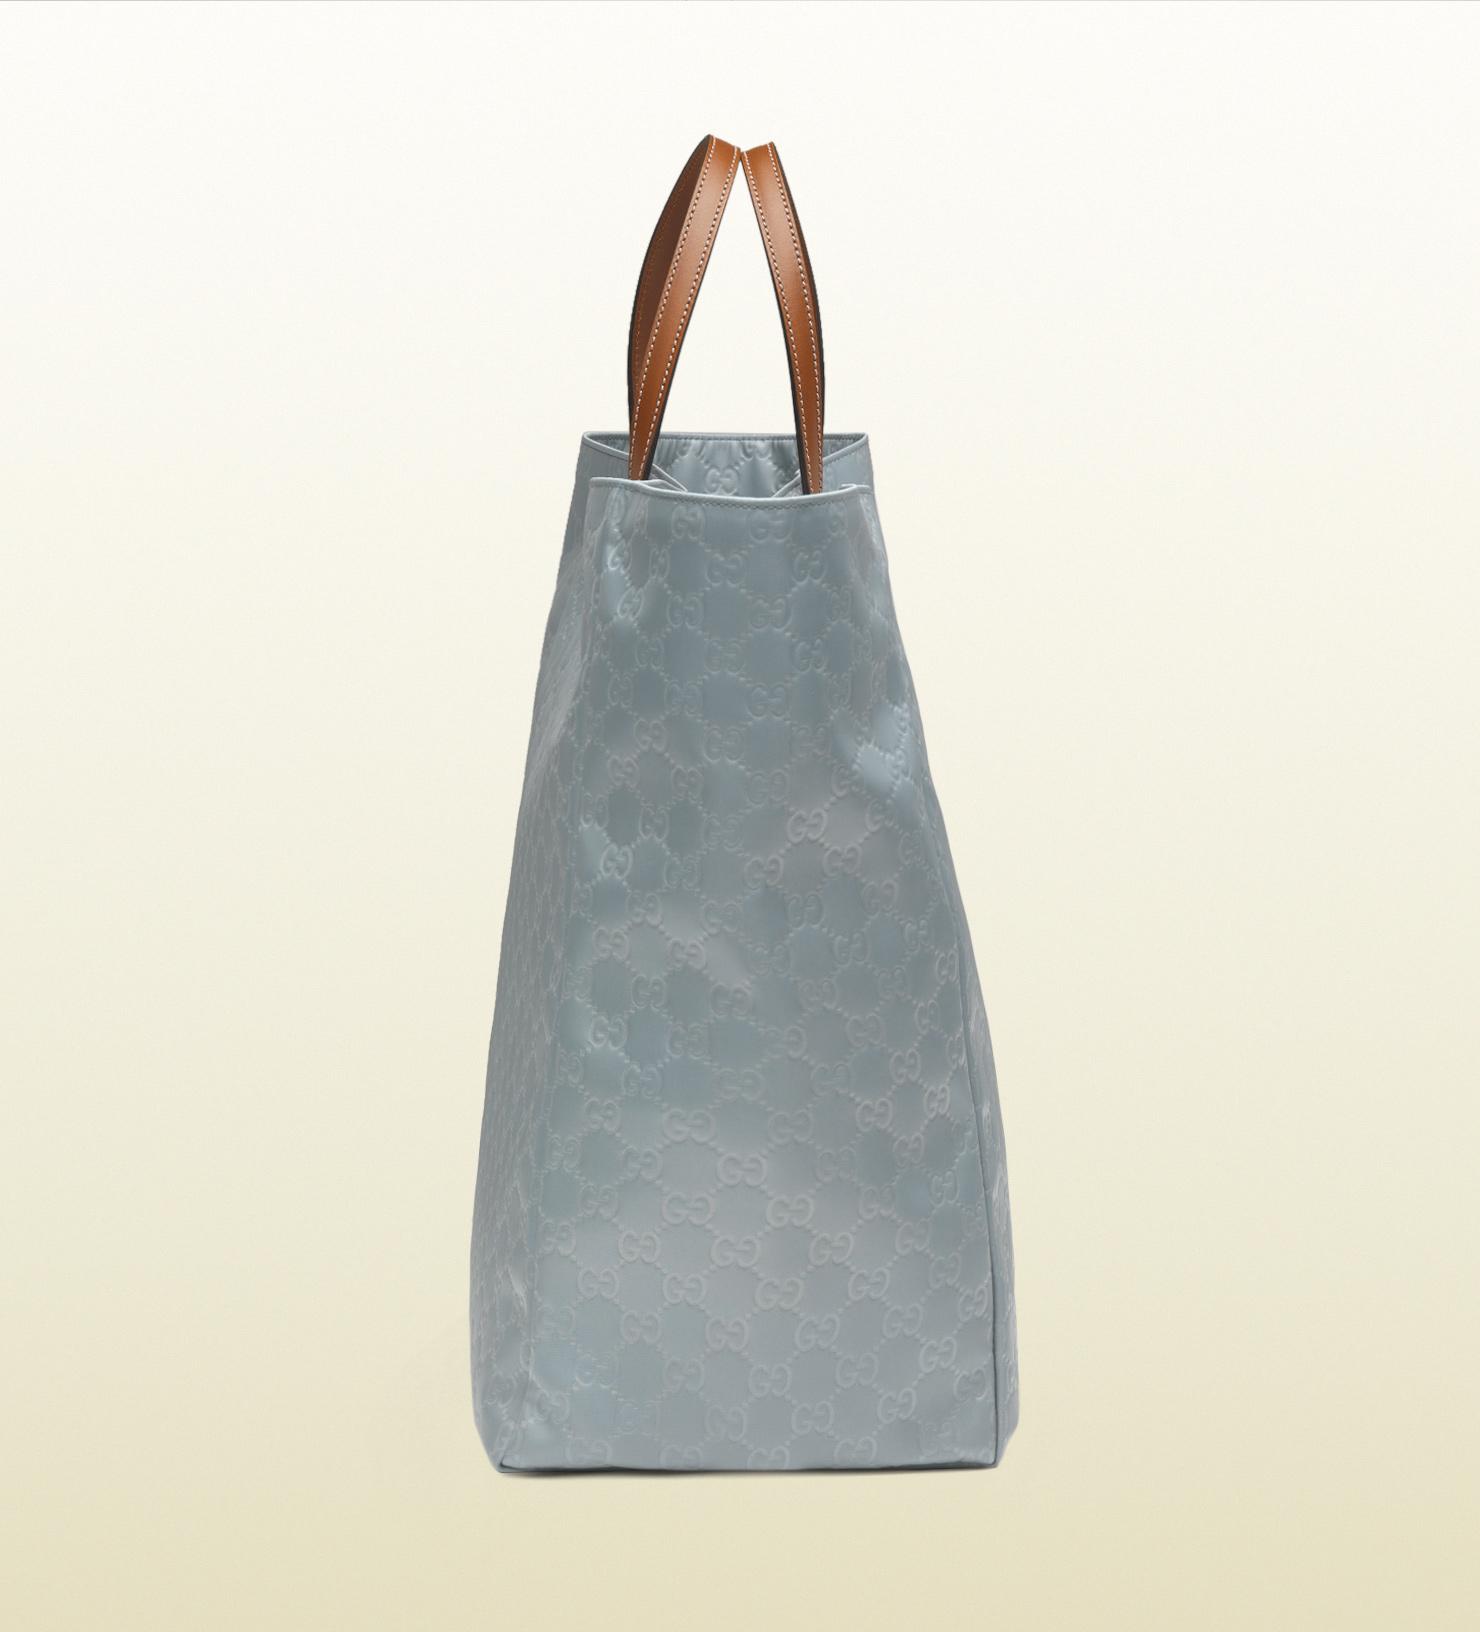 eef1b7ca464 Lyst - Gucci Large Light Blue Nylon Guccissima Tote in Blue for Men